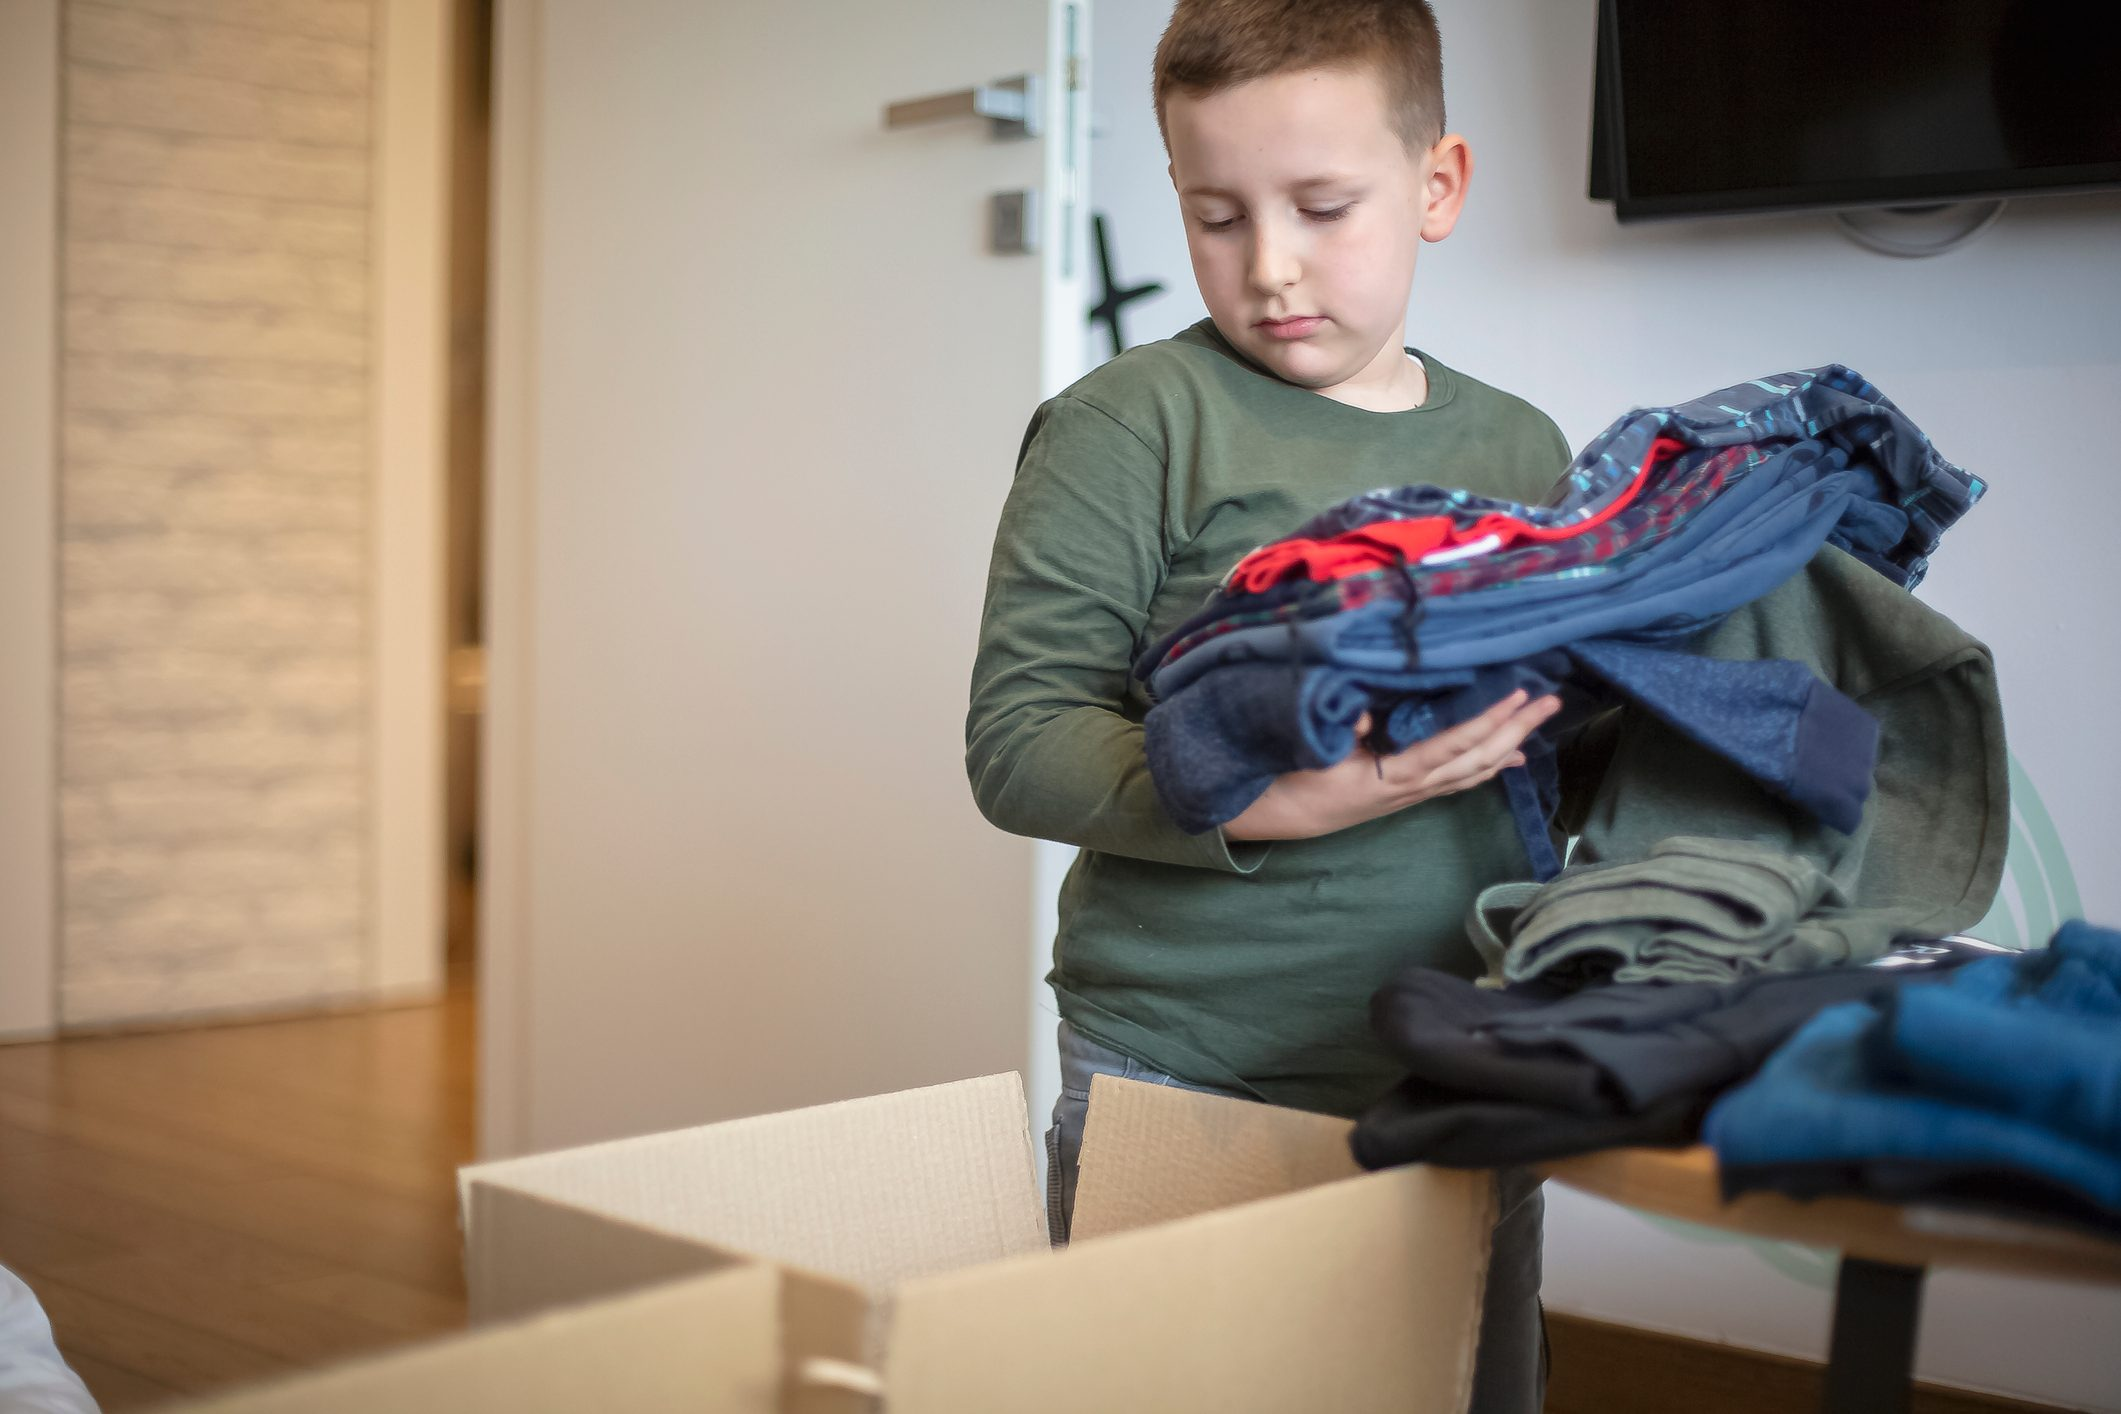 Children sorting clothes from their closet for donation